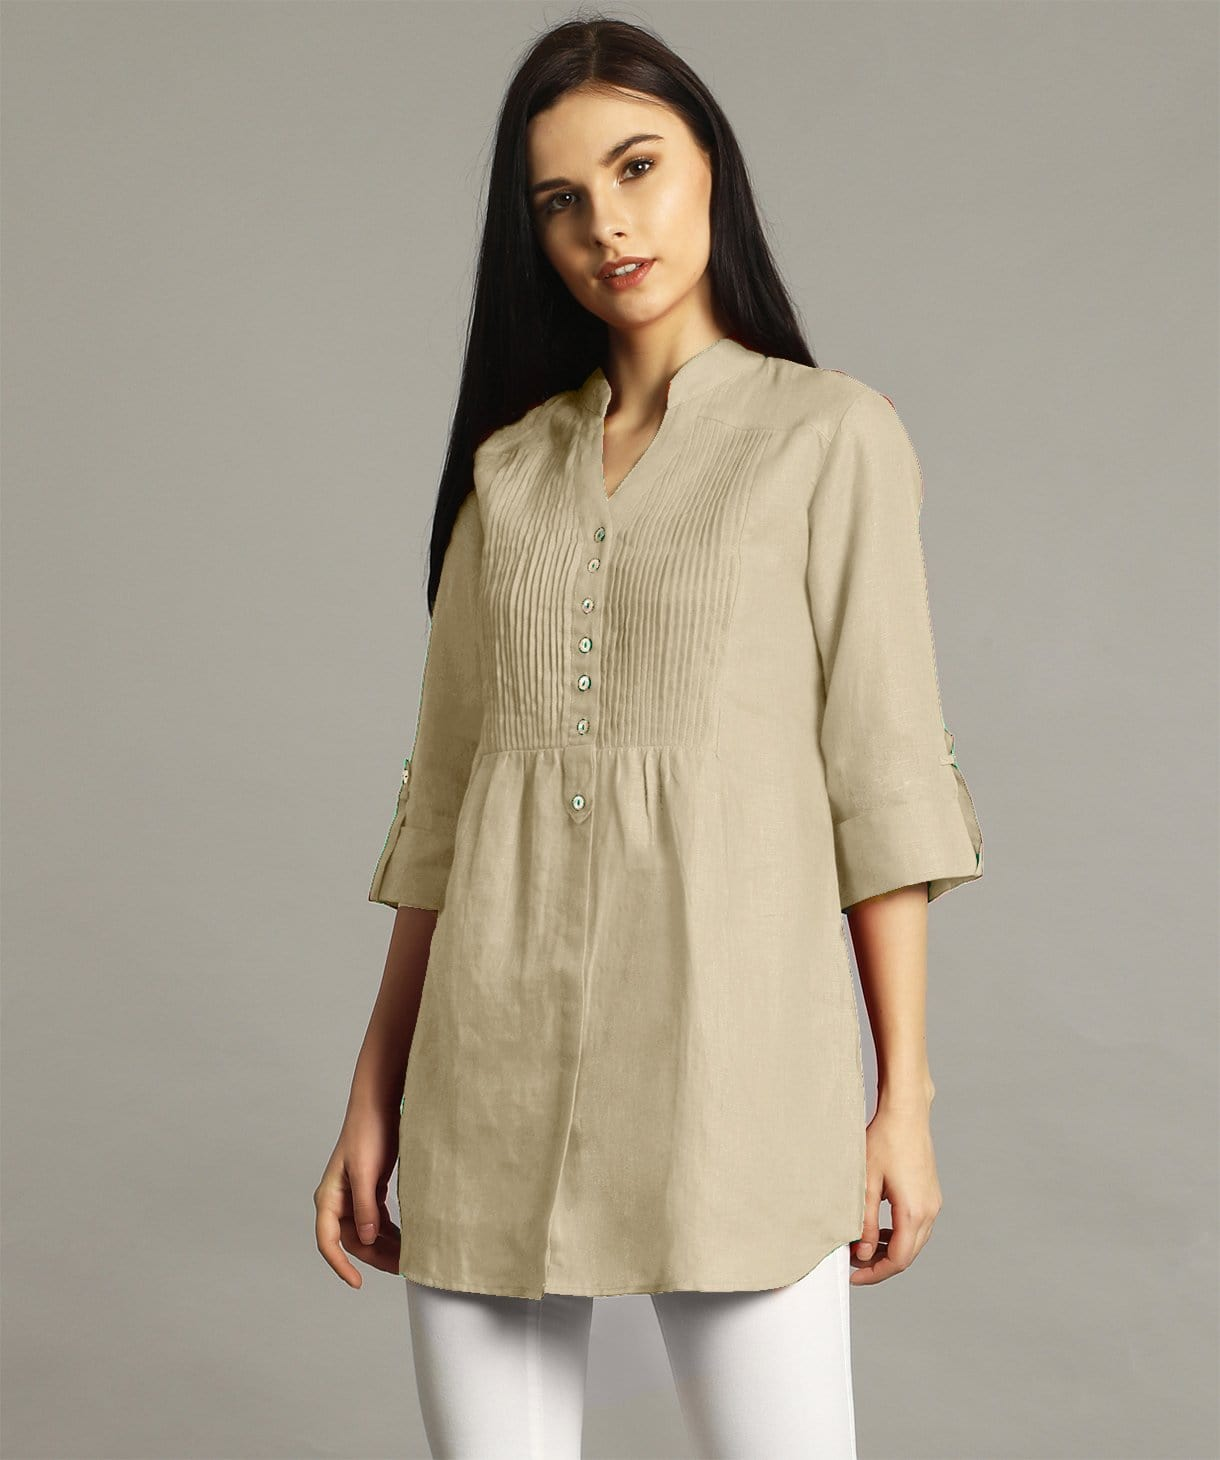 Off White Pleated Yoke Roll-Up Tunic - Uptownie